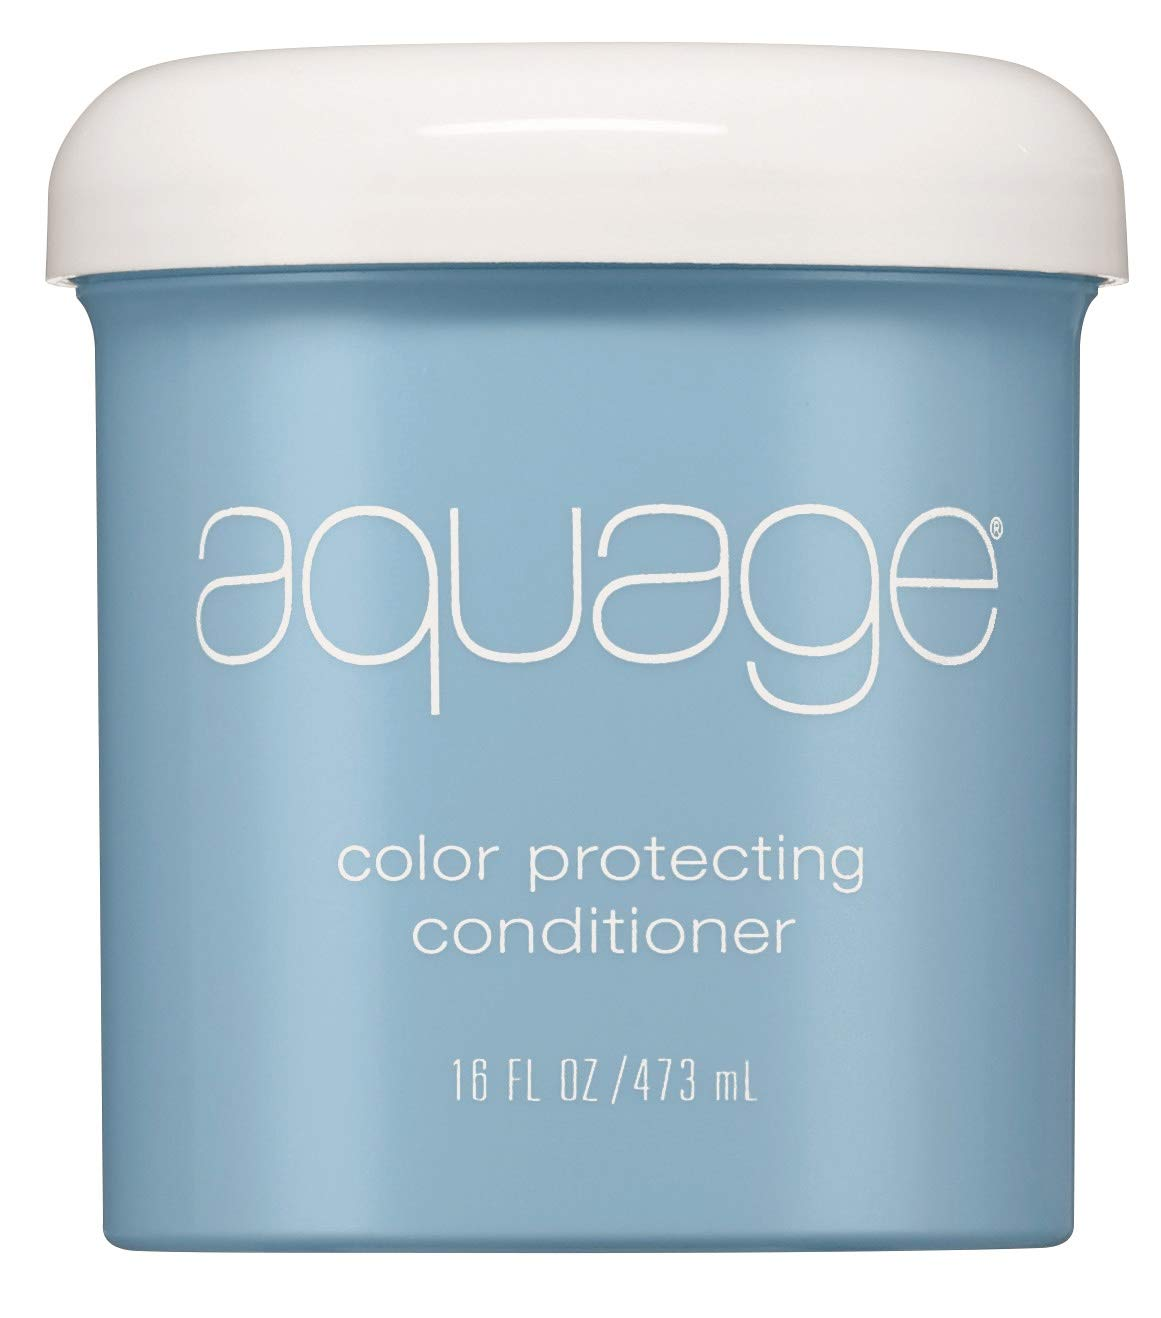 AQUAGE Color Protecting Conditioner, 16 Oz, Deep-Penetrating Moisturizer that Seals in Haircolor, Infused with Nutrient-Rich Sea Botanicals, Restores Hair and Adds Shine